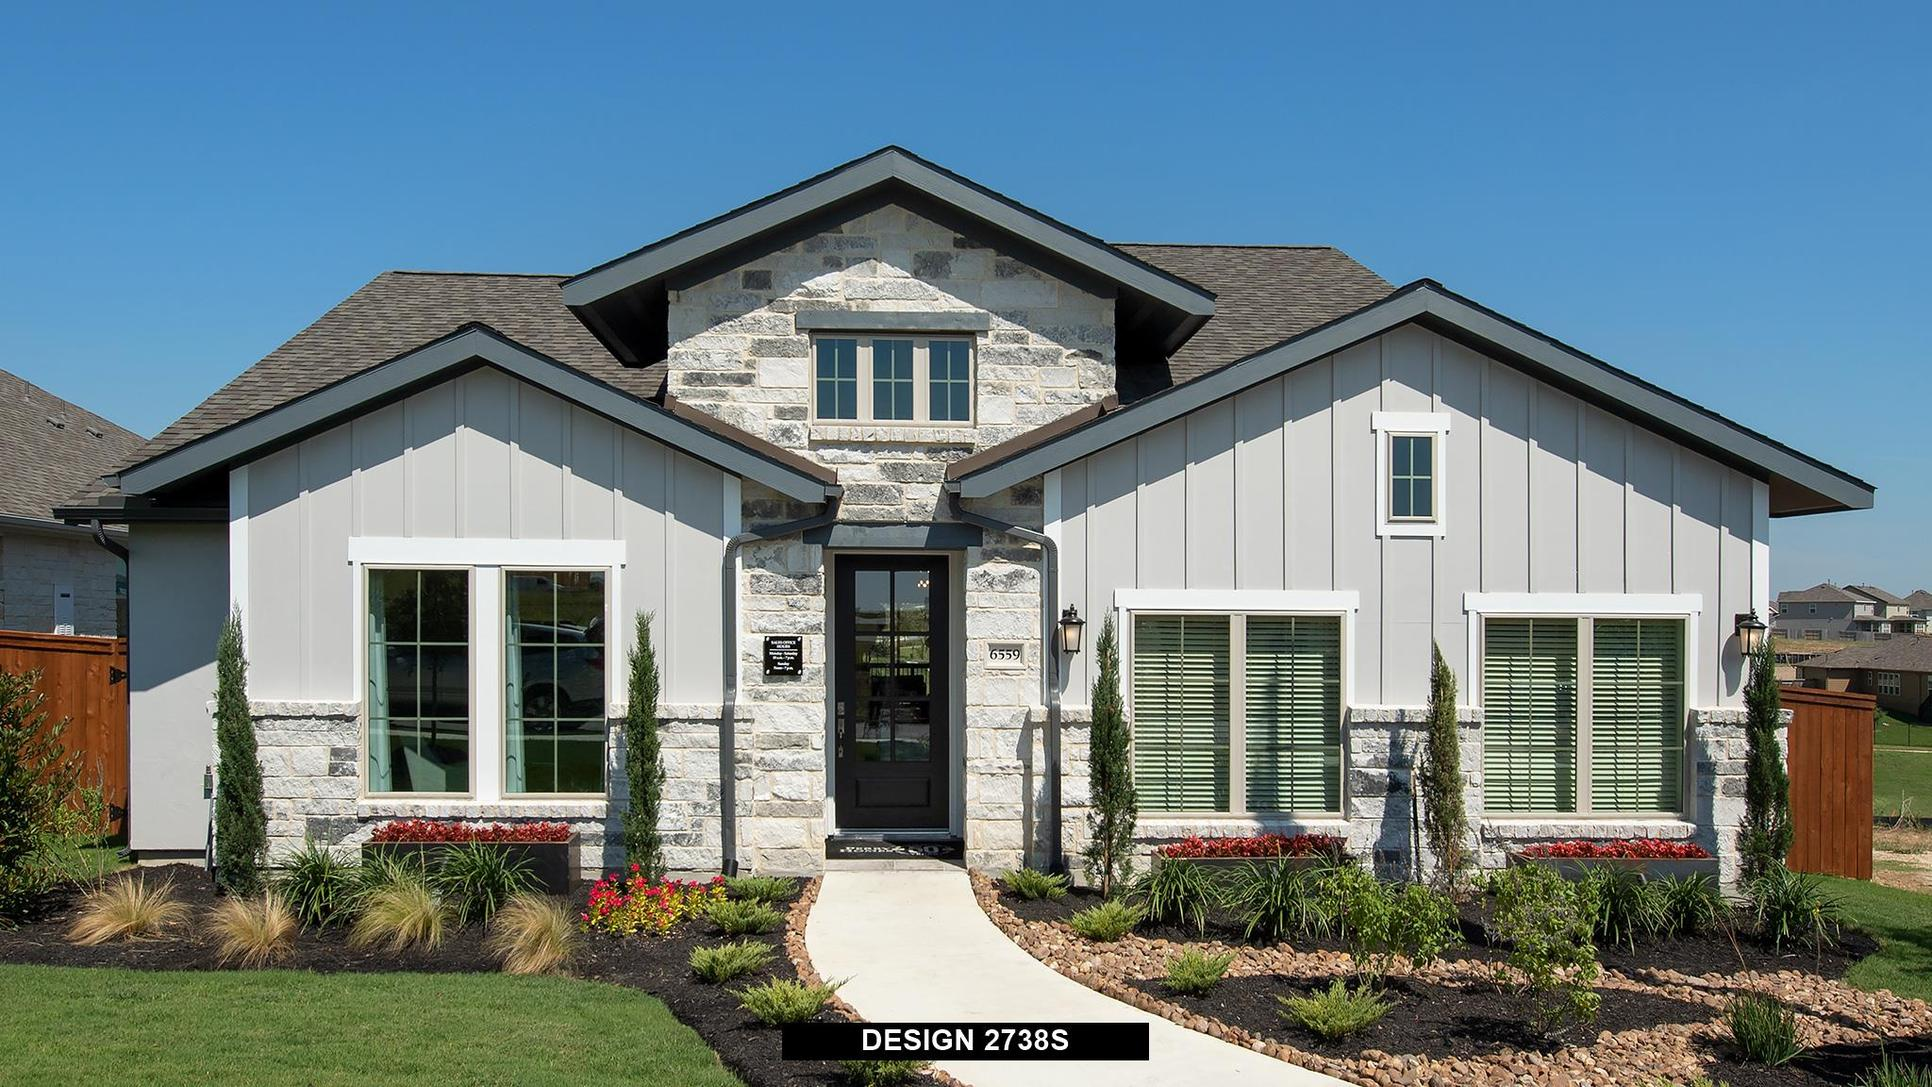 Plan 2738S:Representative photo.  Features and specifications may vary by community.